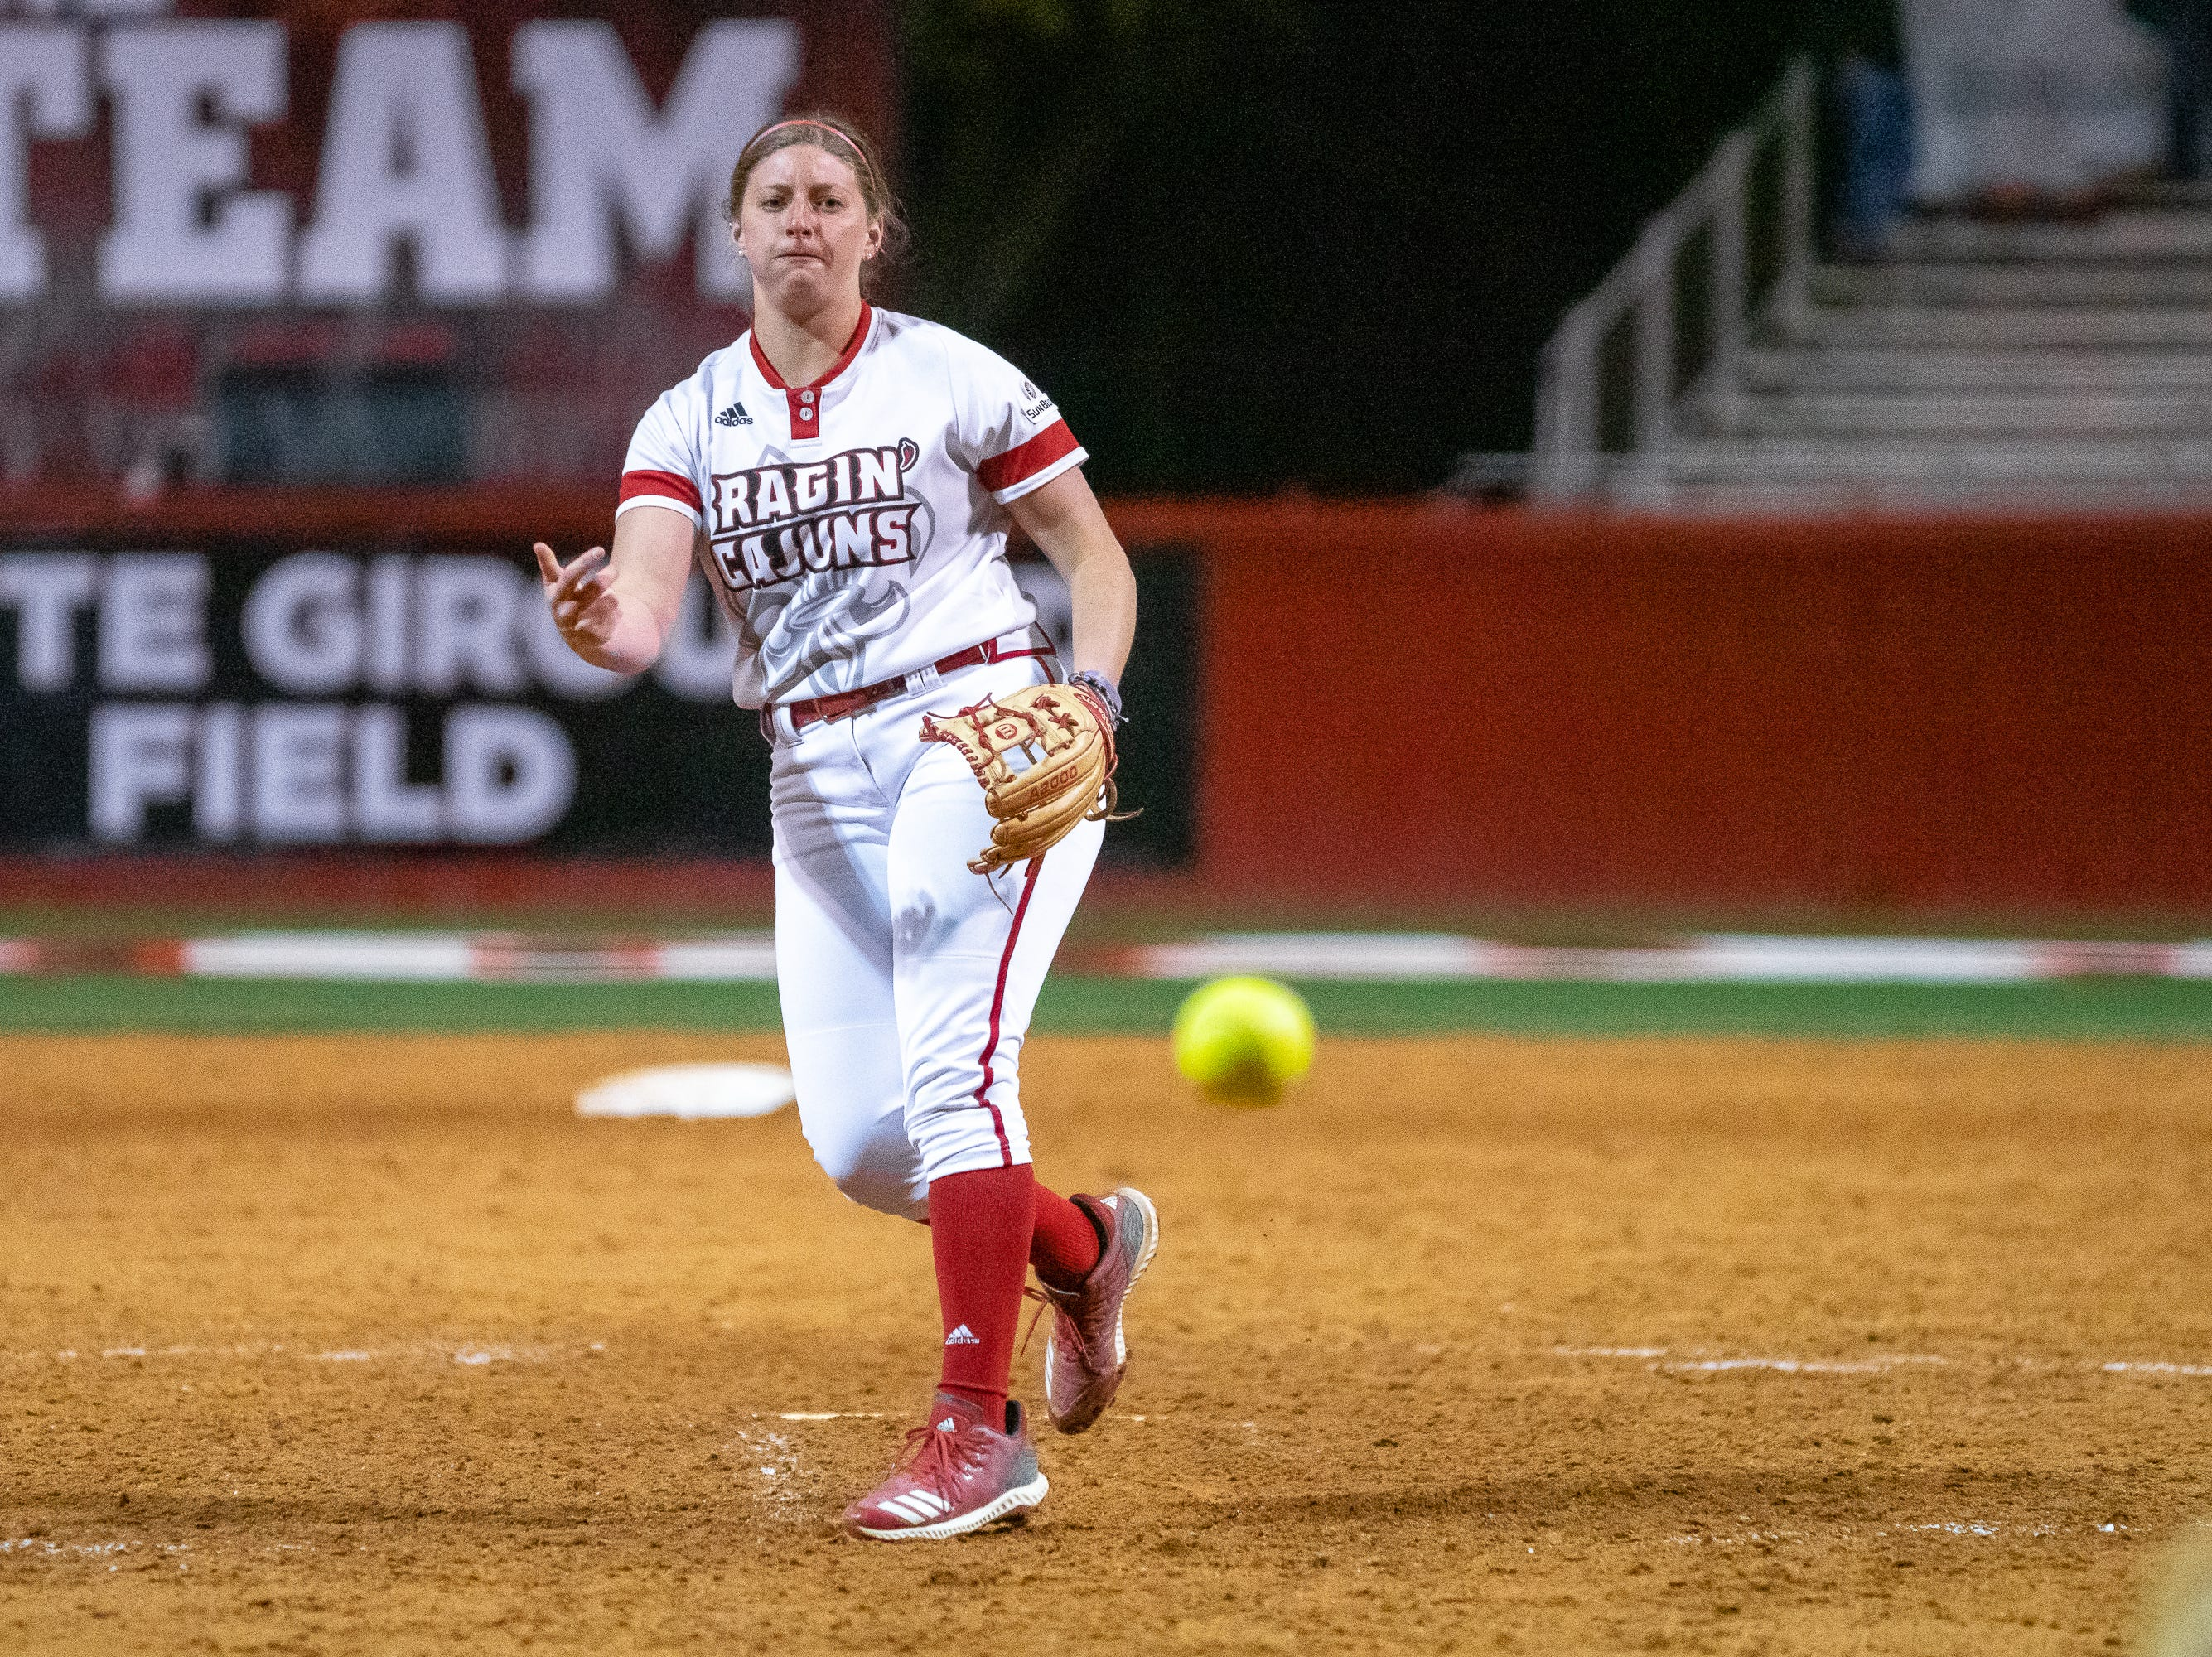 UL's pitcher Carrie Boswell throws the ball to the batter as the Ragin' Cajuns take on the Troy Trojans at Lamson Park, Yvette Girouard Field on Friday, March 15, 2019.